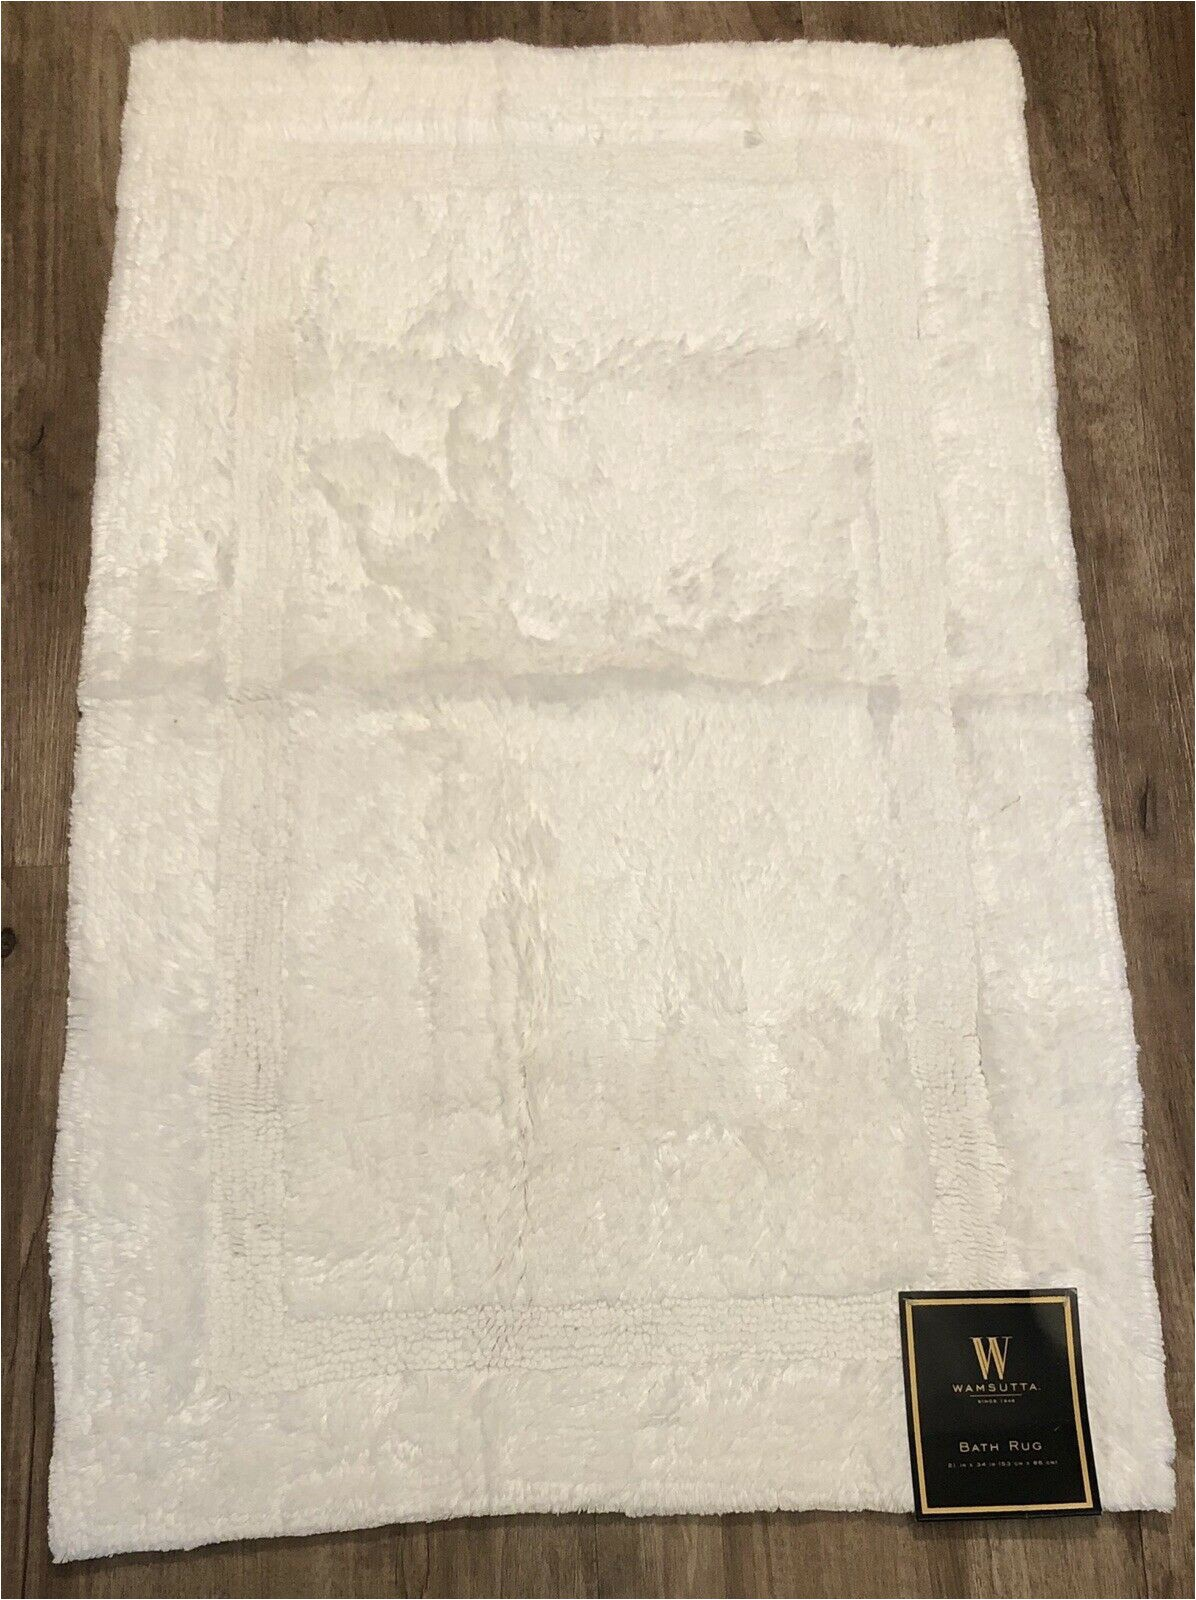 "Wamsutta Hotel Bath Rug Wamsutta Plush Hotel Spa Bath Rug Mat 21"" X 34"" In White Bed Bath & Beyond New"